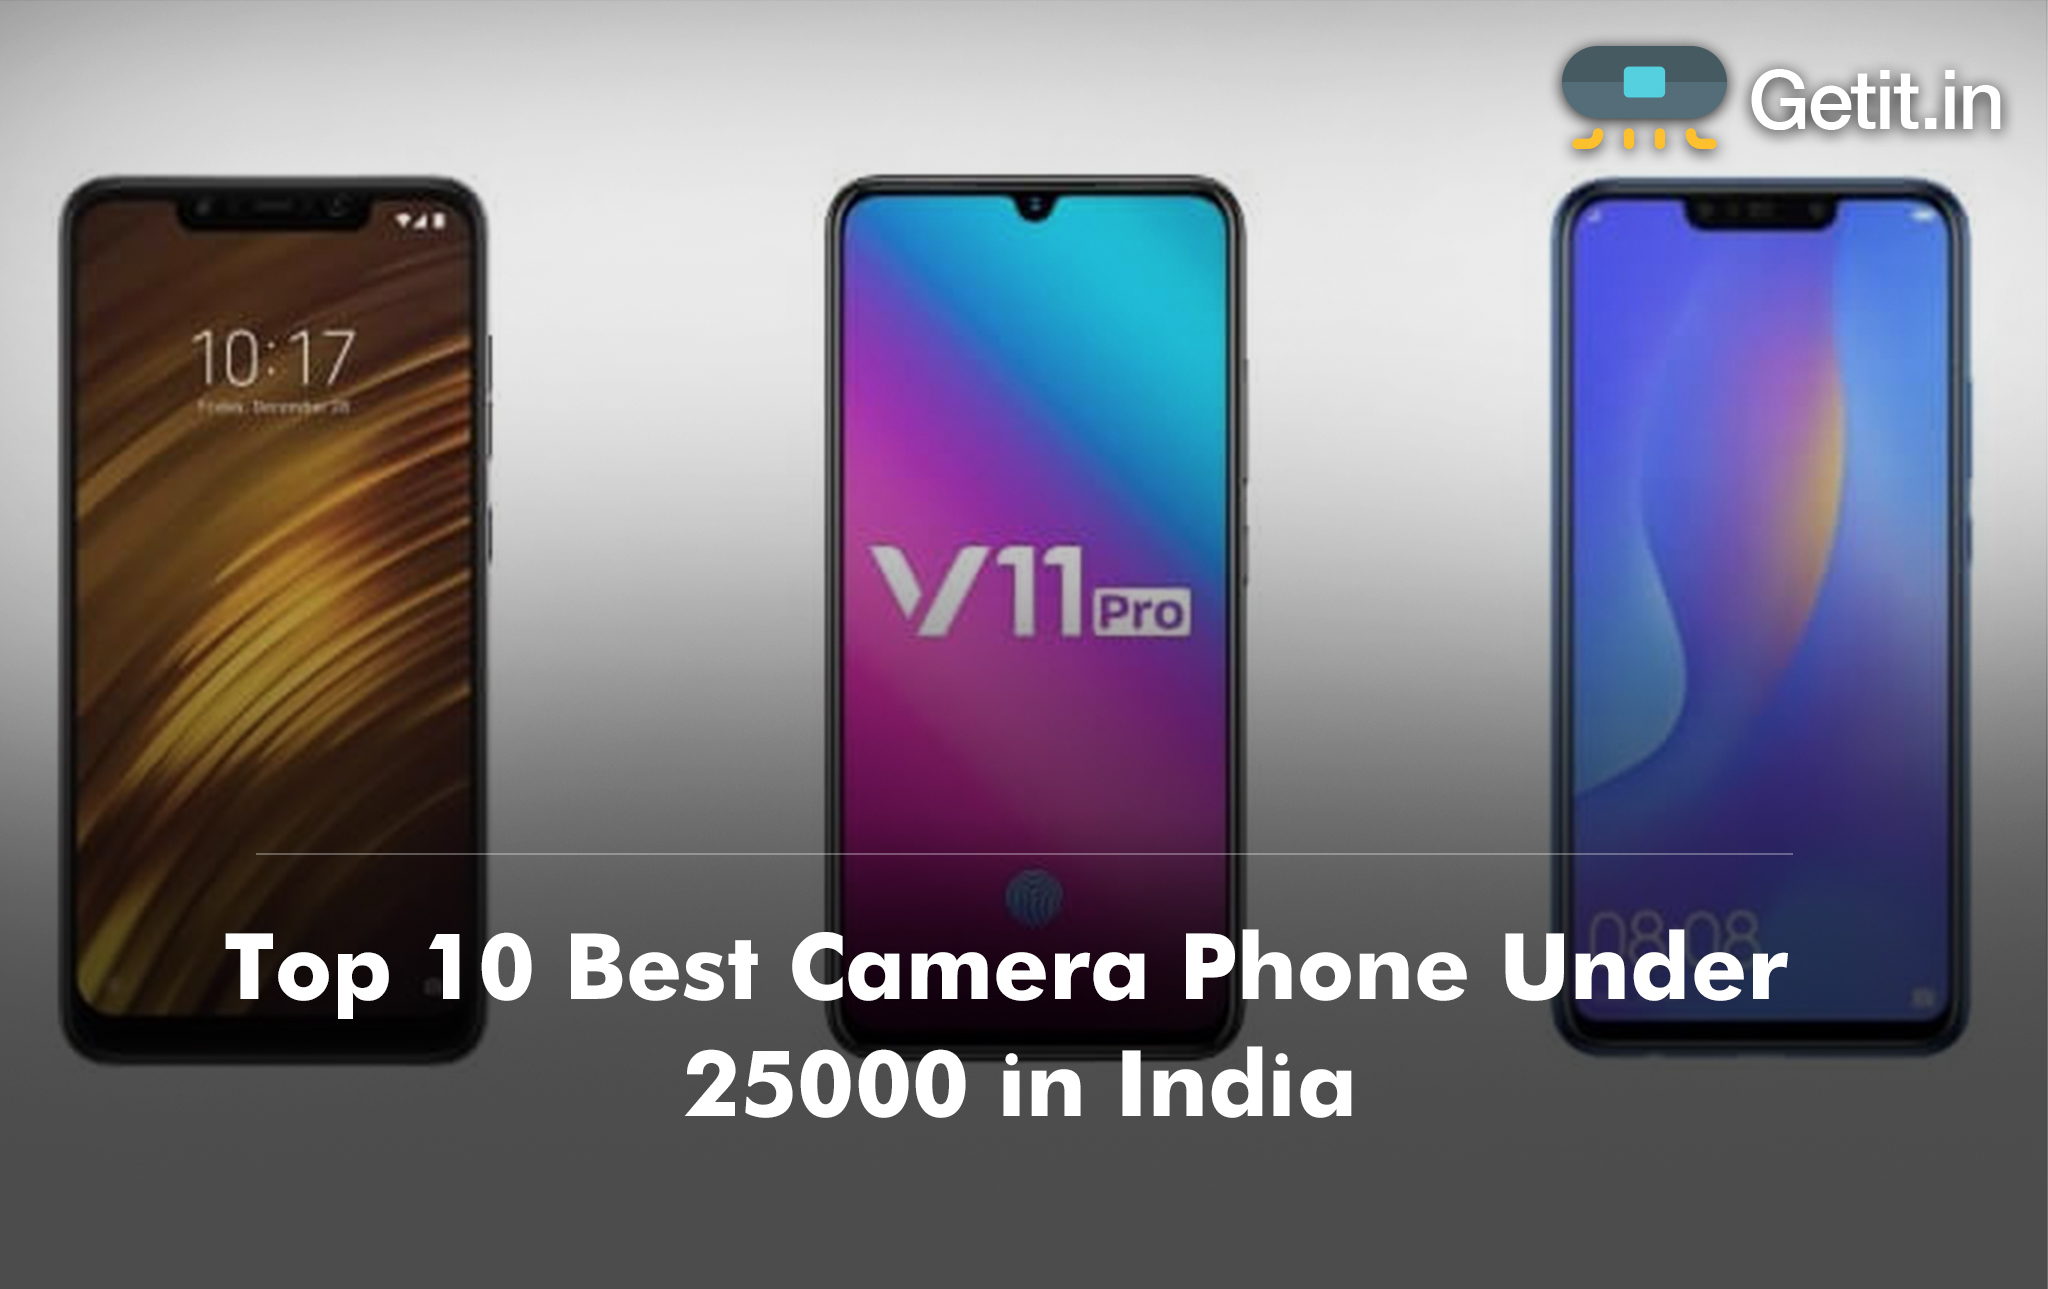 Top 10 Best Camera Phone Under 25000 in India